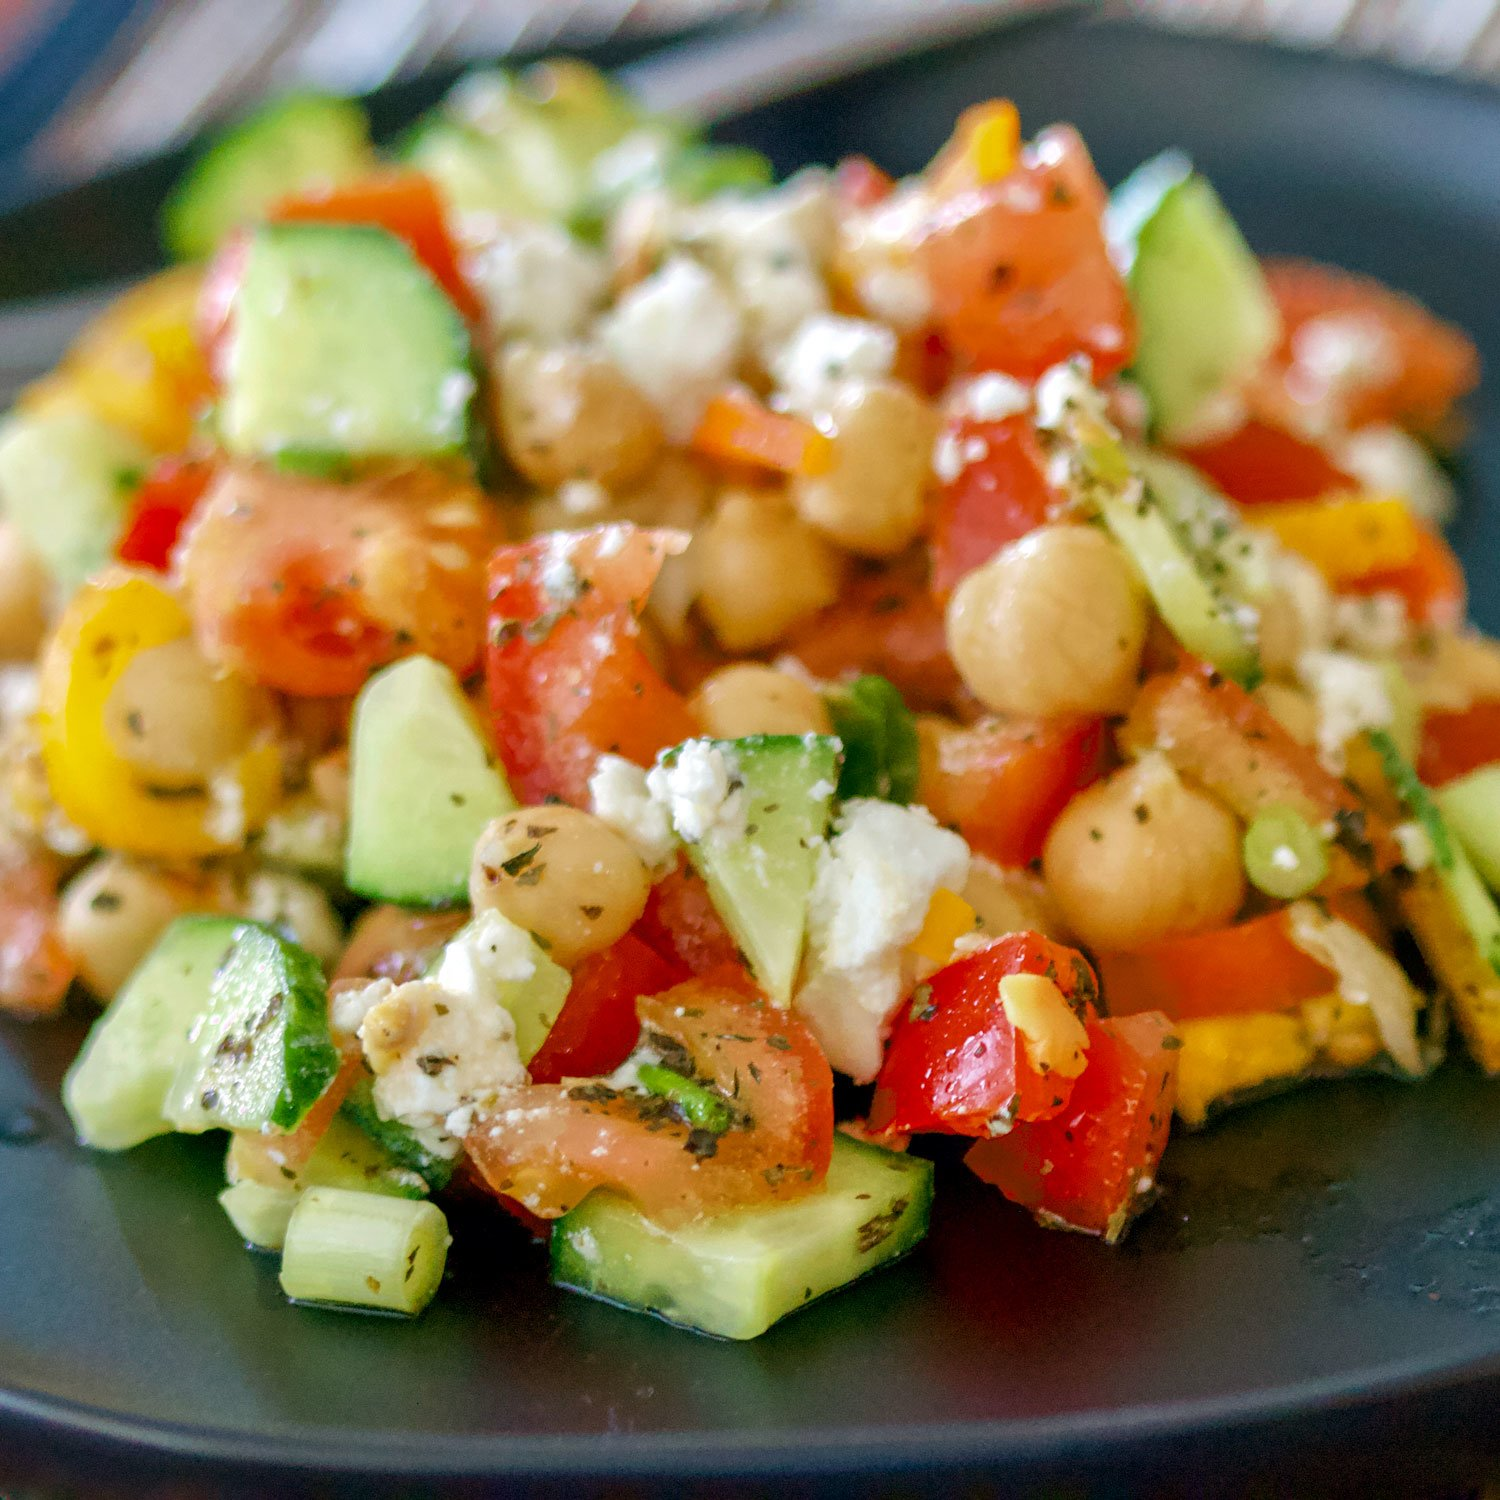 This Easy Chopped Chickpea Salad with Feta and Mint is a great recipe for any day of the year. Grab that can of chickpeas from your pantry and make the recipe in less than 10 minutes. Use fresh mint and basil in the summer or dried herbs in the winter. Healthy, easy and delicious!